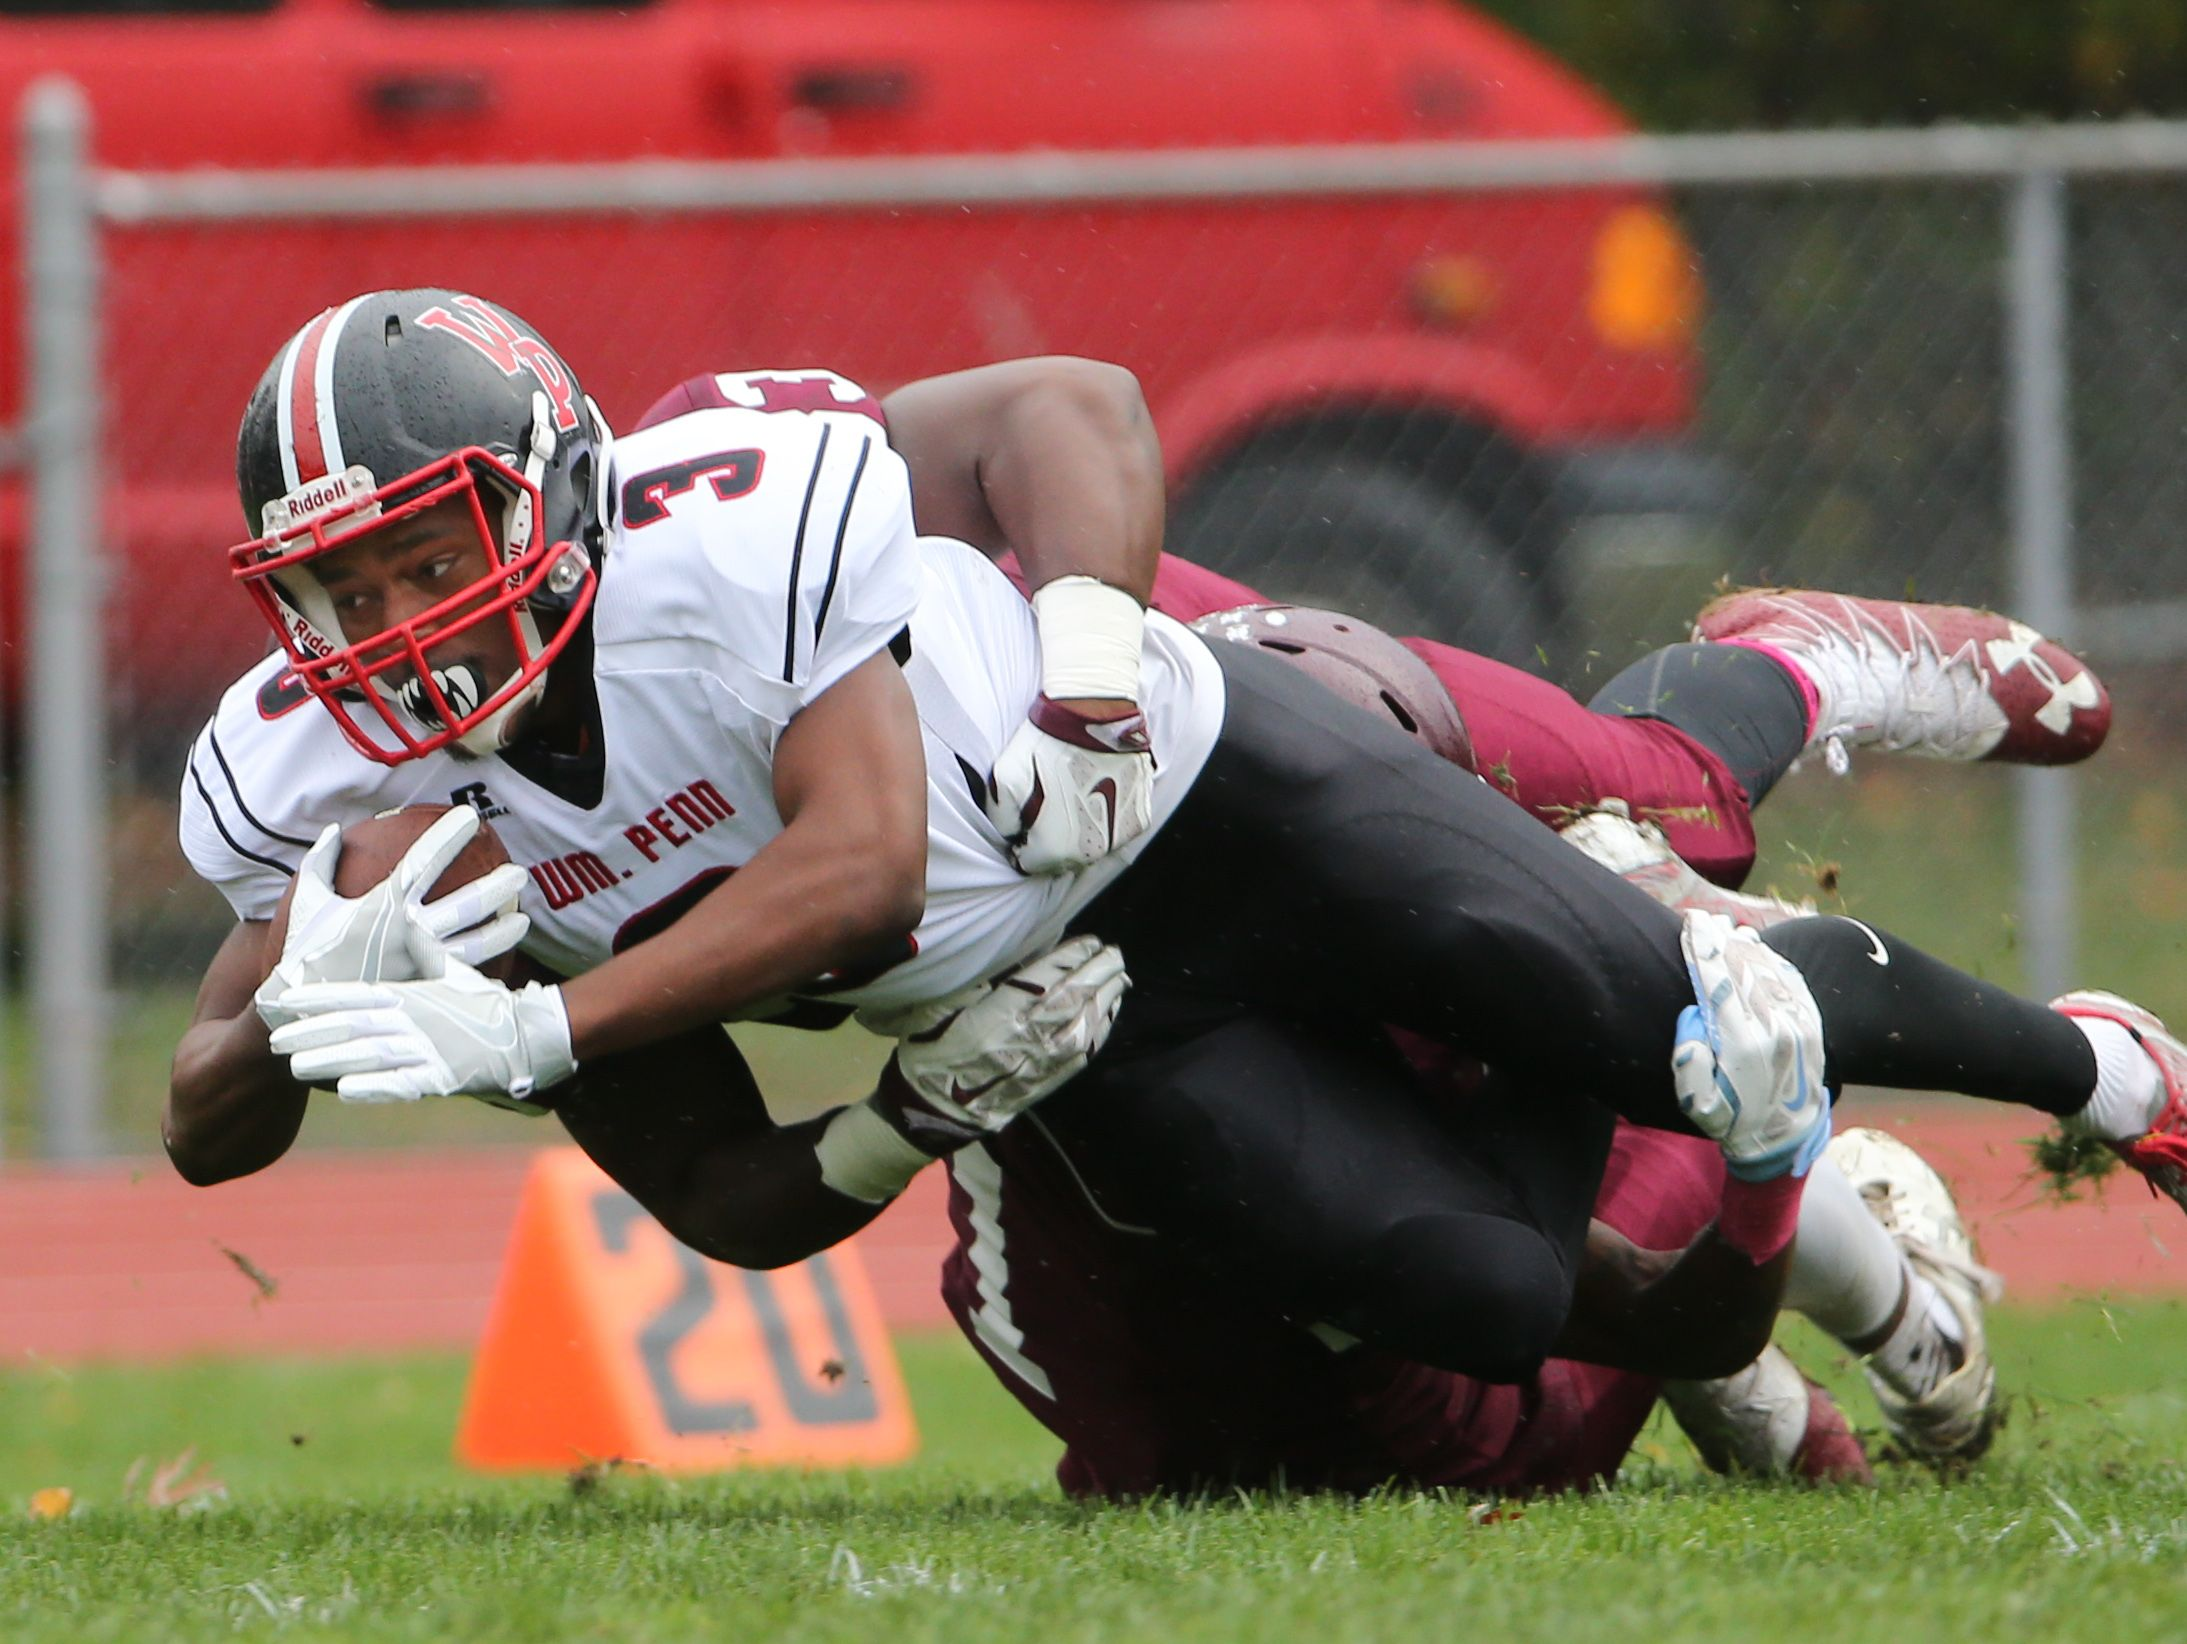 William Penn's Joe Greenwood dives for extra yardage while being tackled by Concord's Byron Simpson in the first quarter of the Colonial's 14-7 win over Concord.